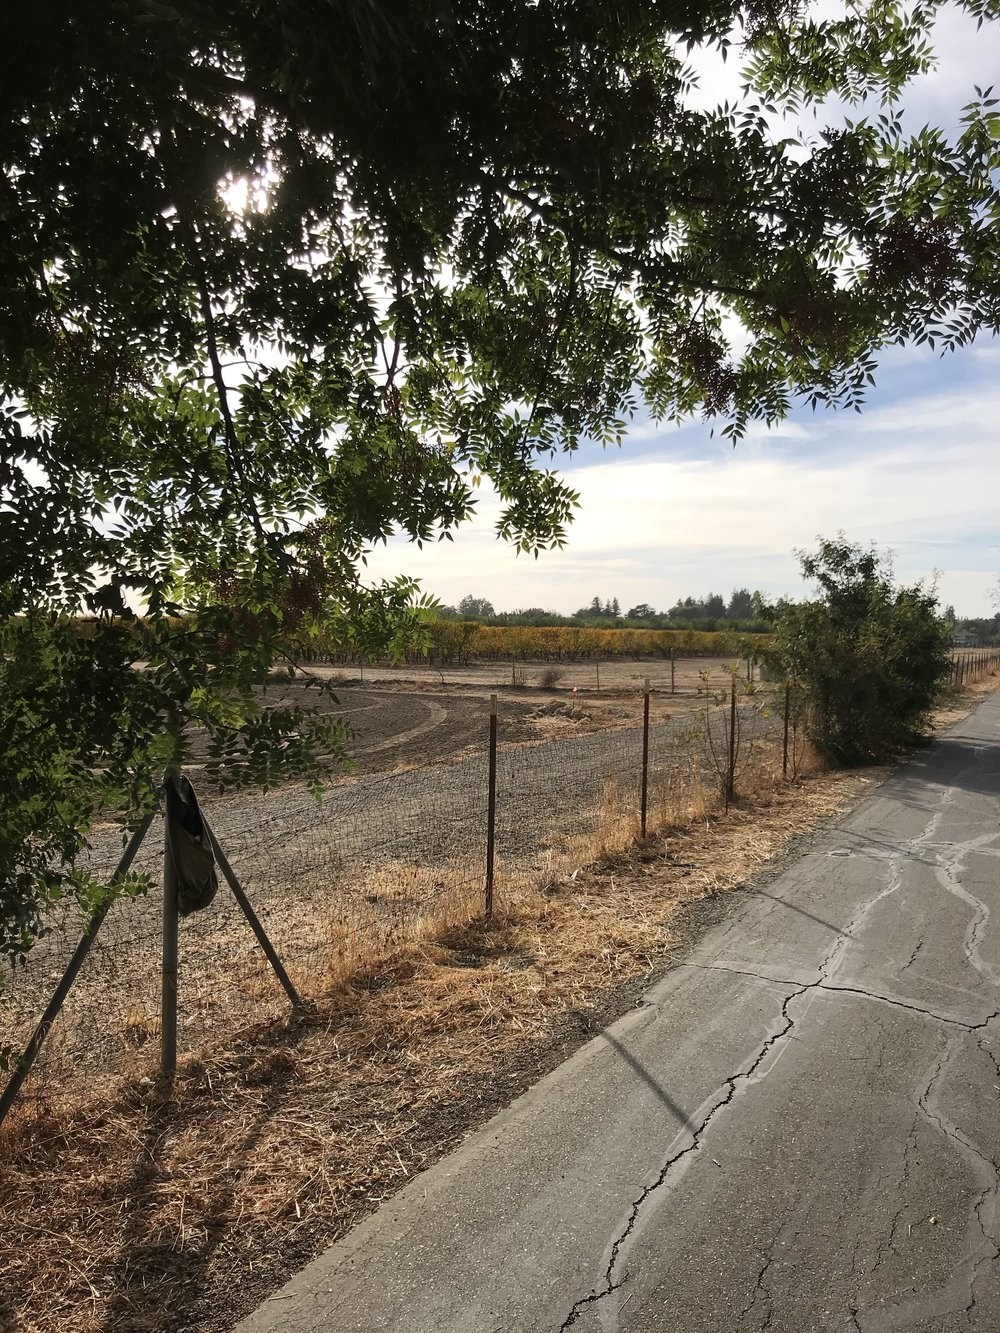 UC Davis Ag land and Bike path parallel to Russell Blvd. The border between the City of Davis and the Regents of California.